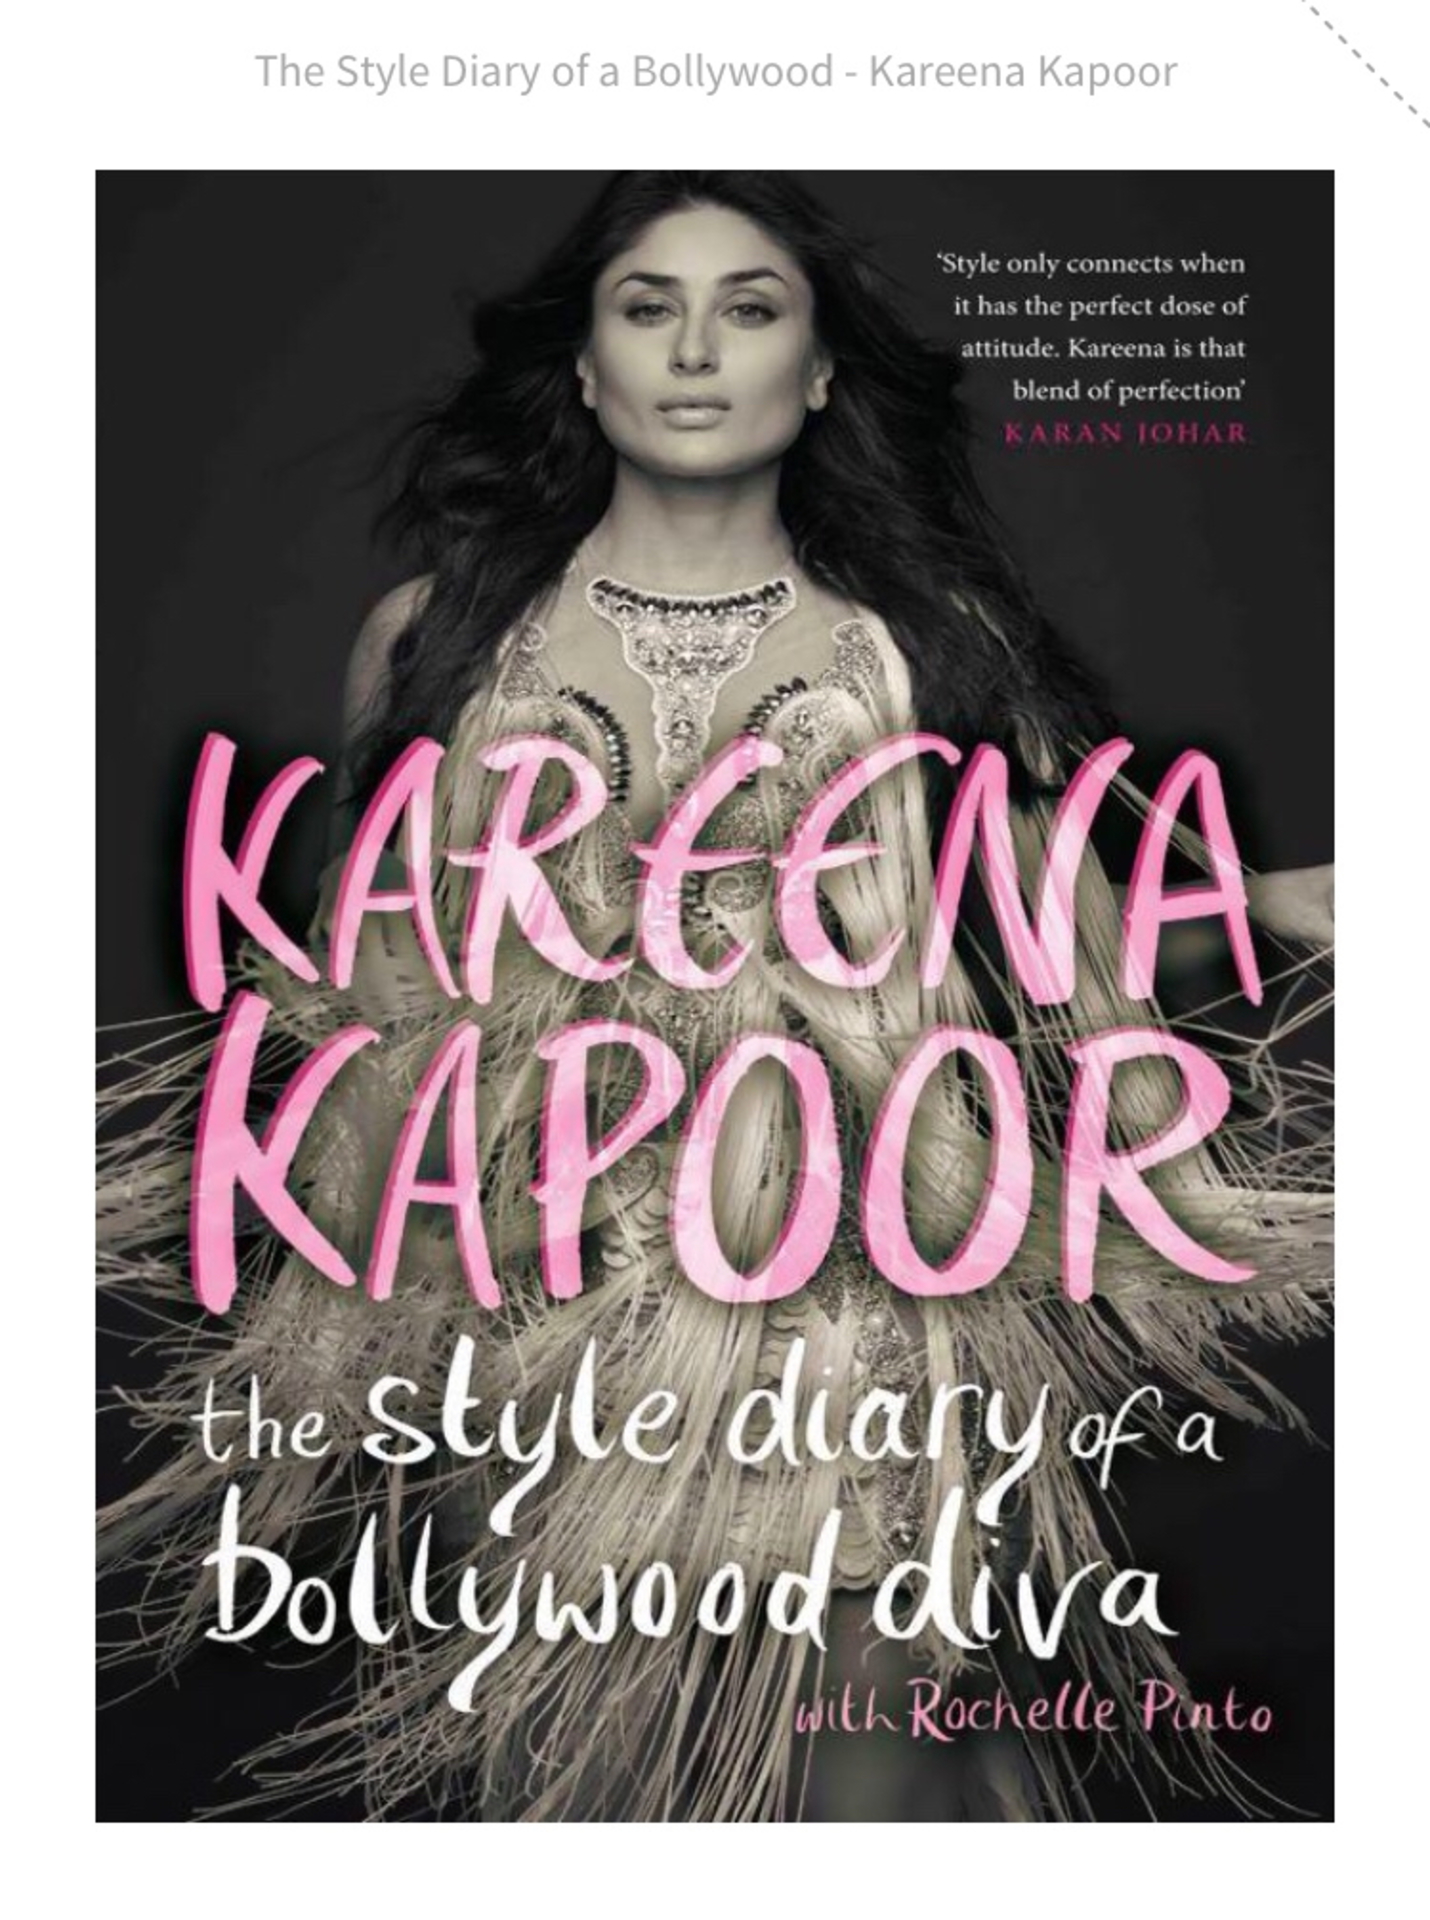 The Style diary of a Bollywood Diva - The book image